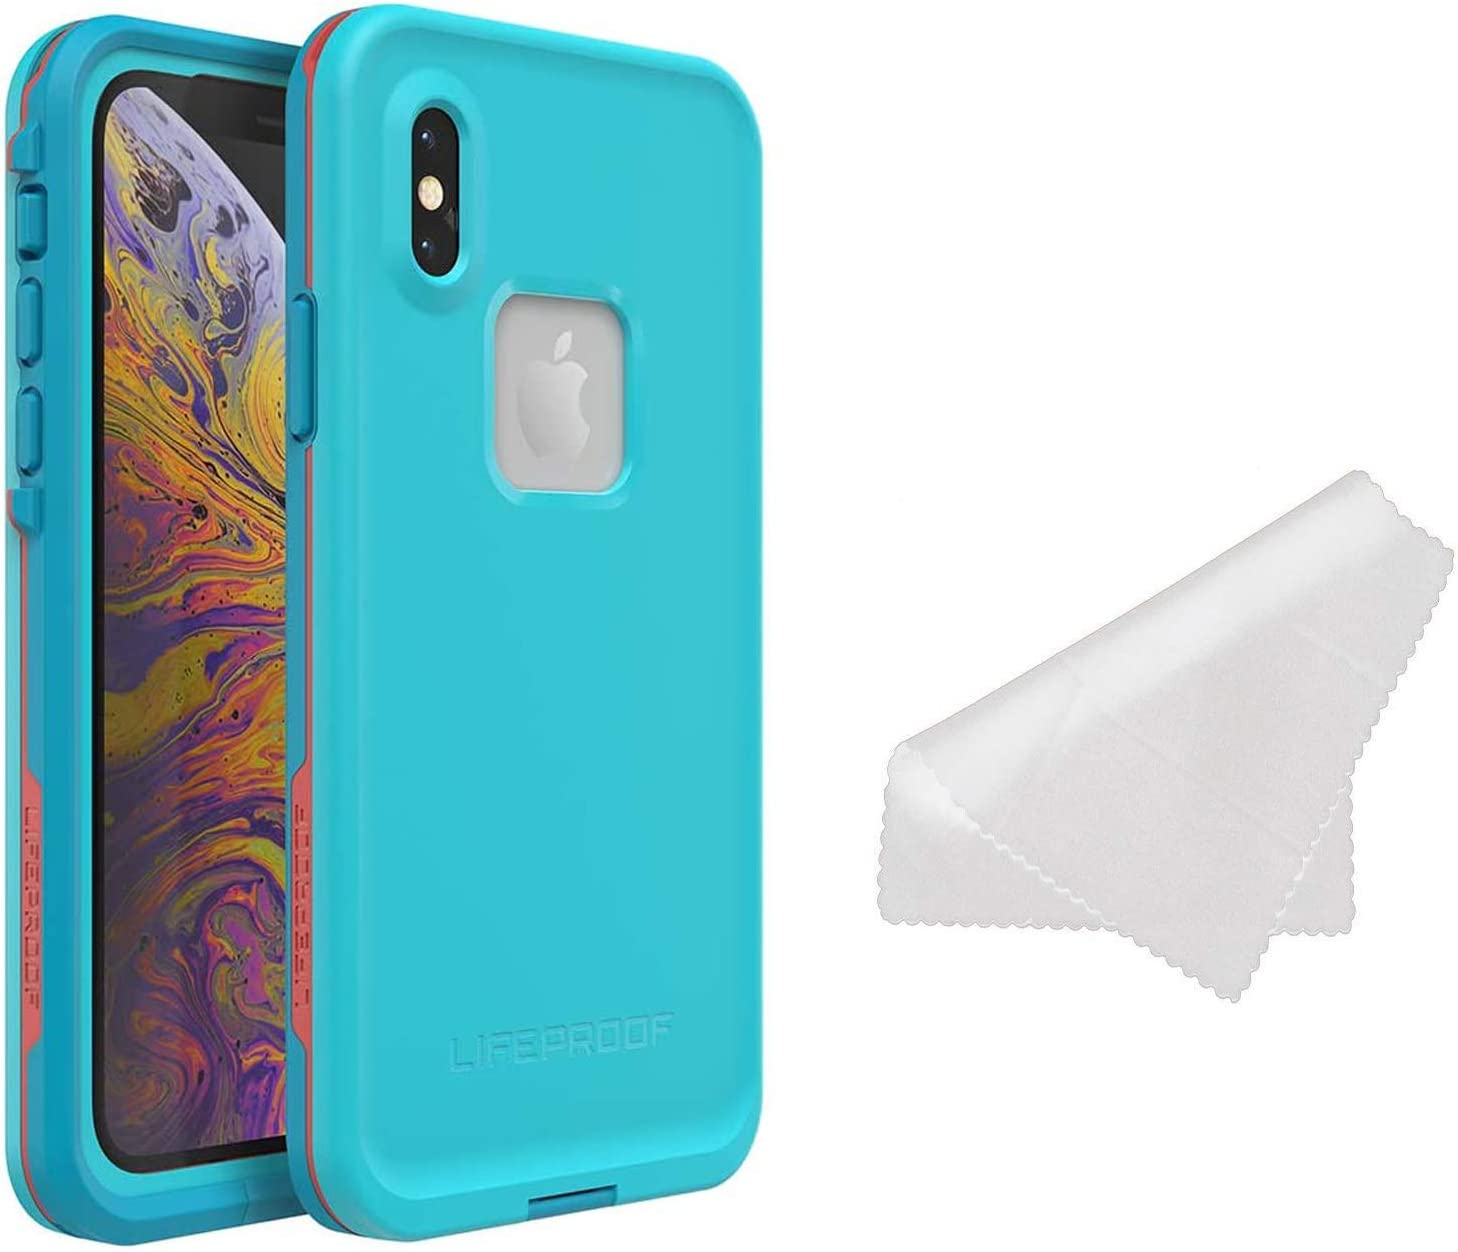 Lifeproof FRE Series Waterproof Case for iPhone Xs Max (ONLY) with Cleaning Cloth - Retail Packaging - Boosted (Blue Atoll/Hawaiian Ocean/Emberglow)